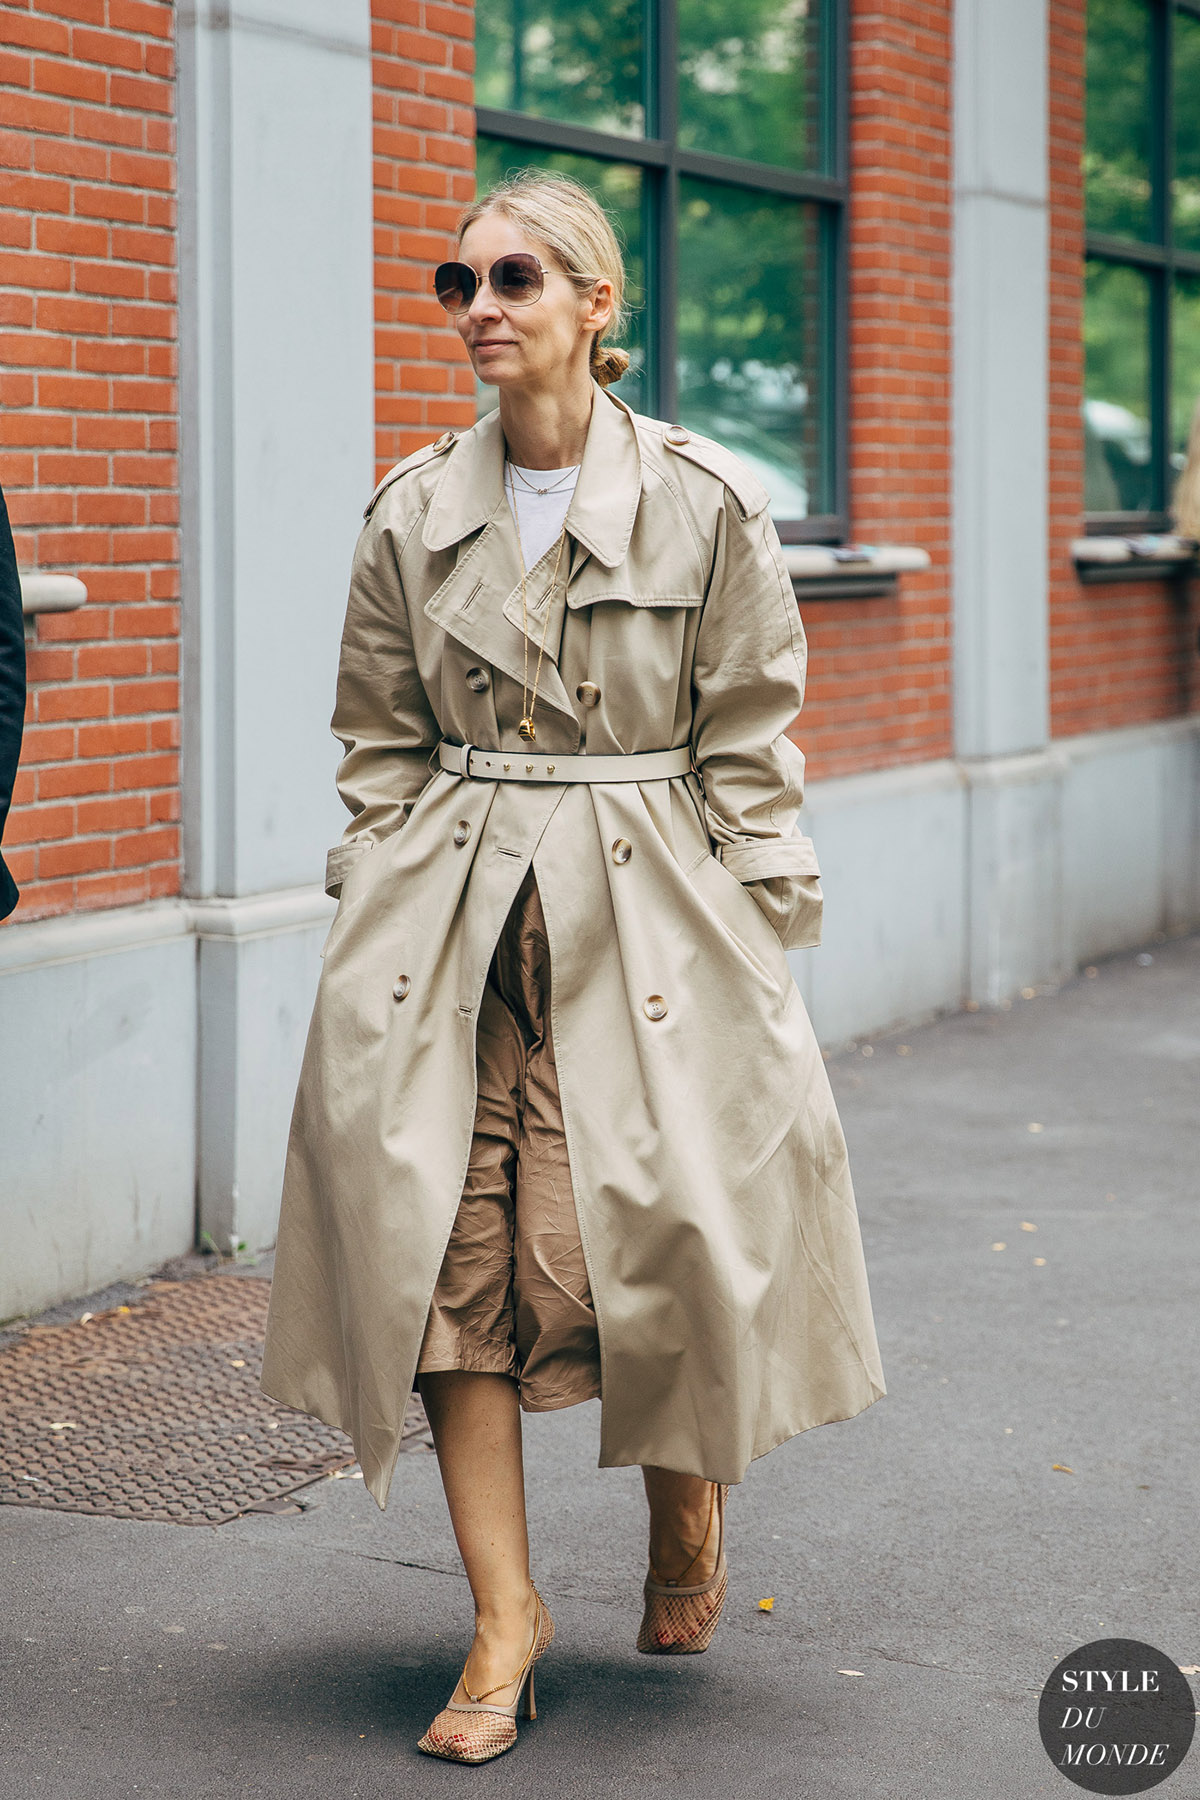 Suzanne-Koller-by-STYLEDUMONDE-Street-Style-Fashion-Photography20190919_48A3133